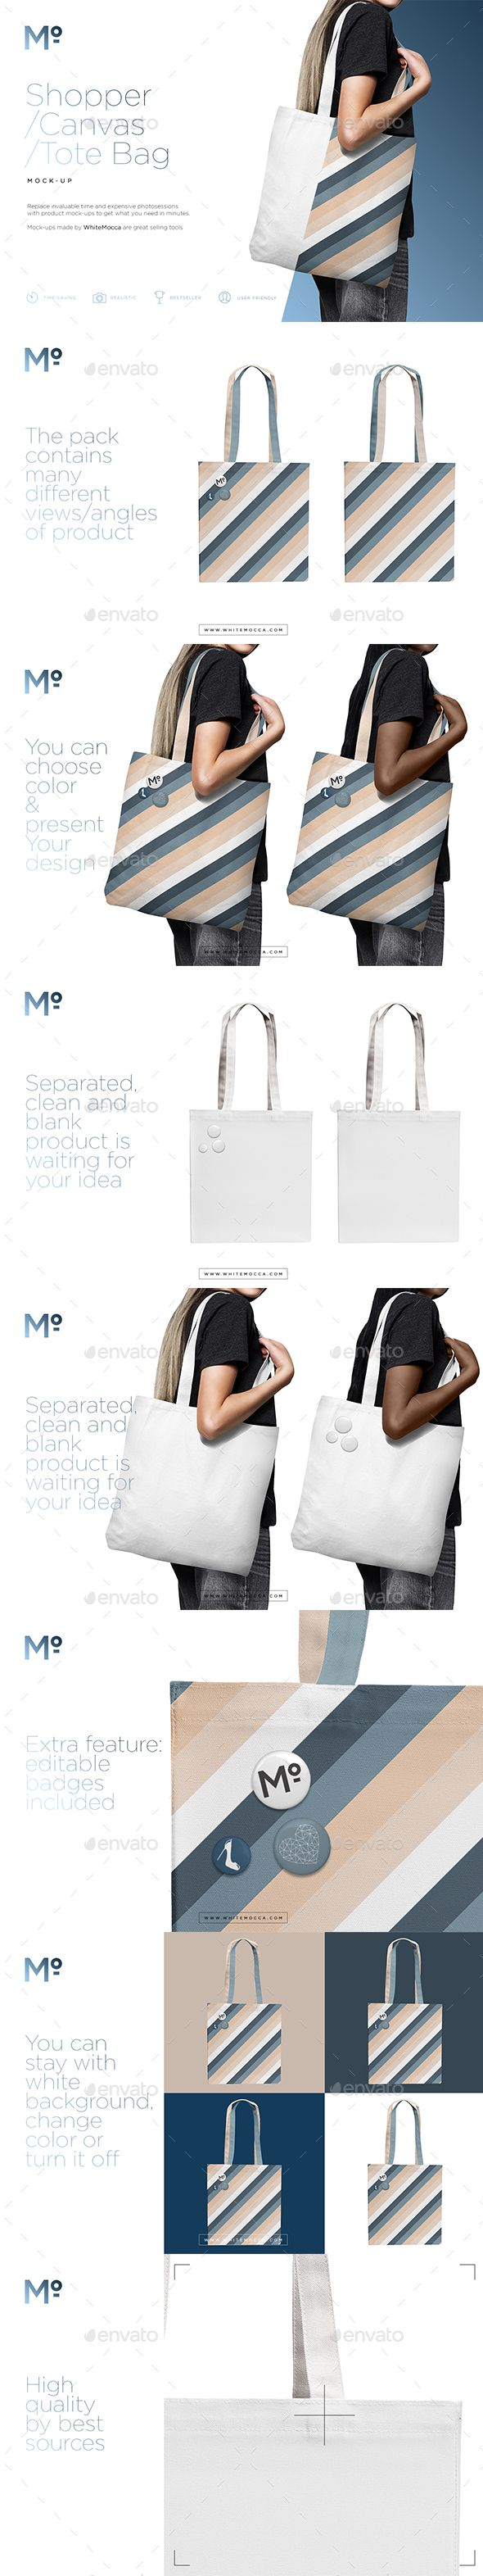 Canvas Shopper / Tote Bag Mock-up - Miscellaneous Product #Mock-Ups Download here:  https://graphicriver.net/item/canvas-shopper-tote-bag-mockup/19545823?ref=alena994